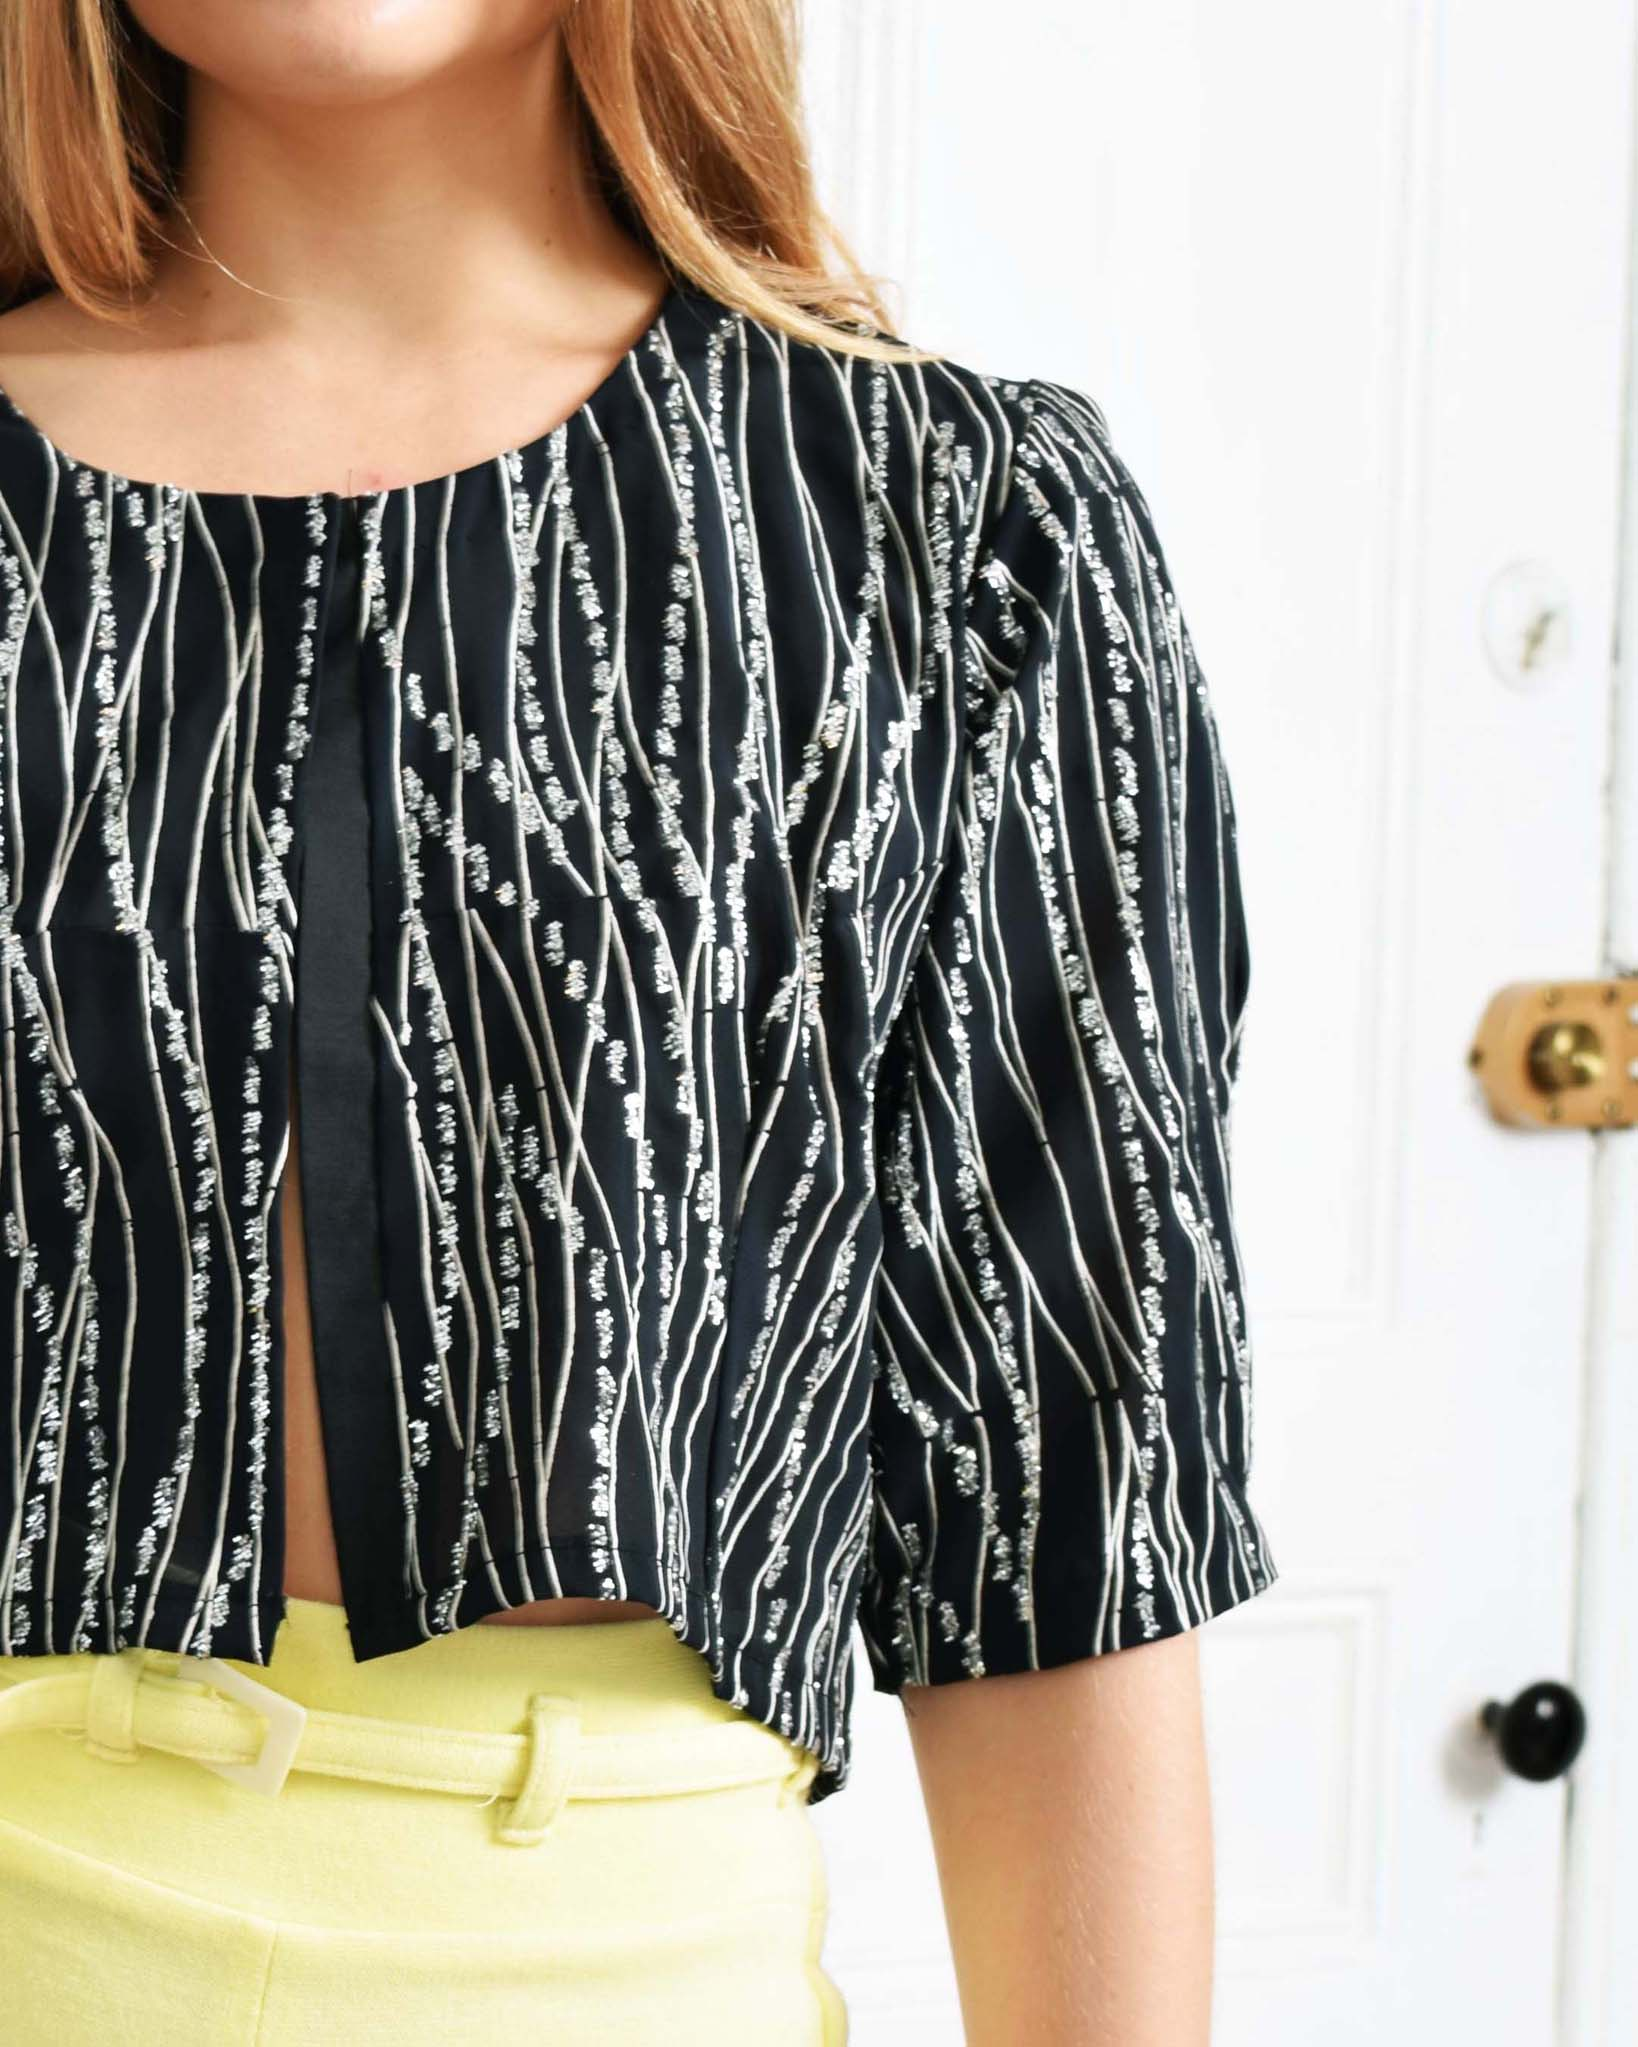 Vintage 1970s Metallic Striped Top